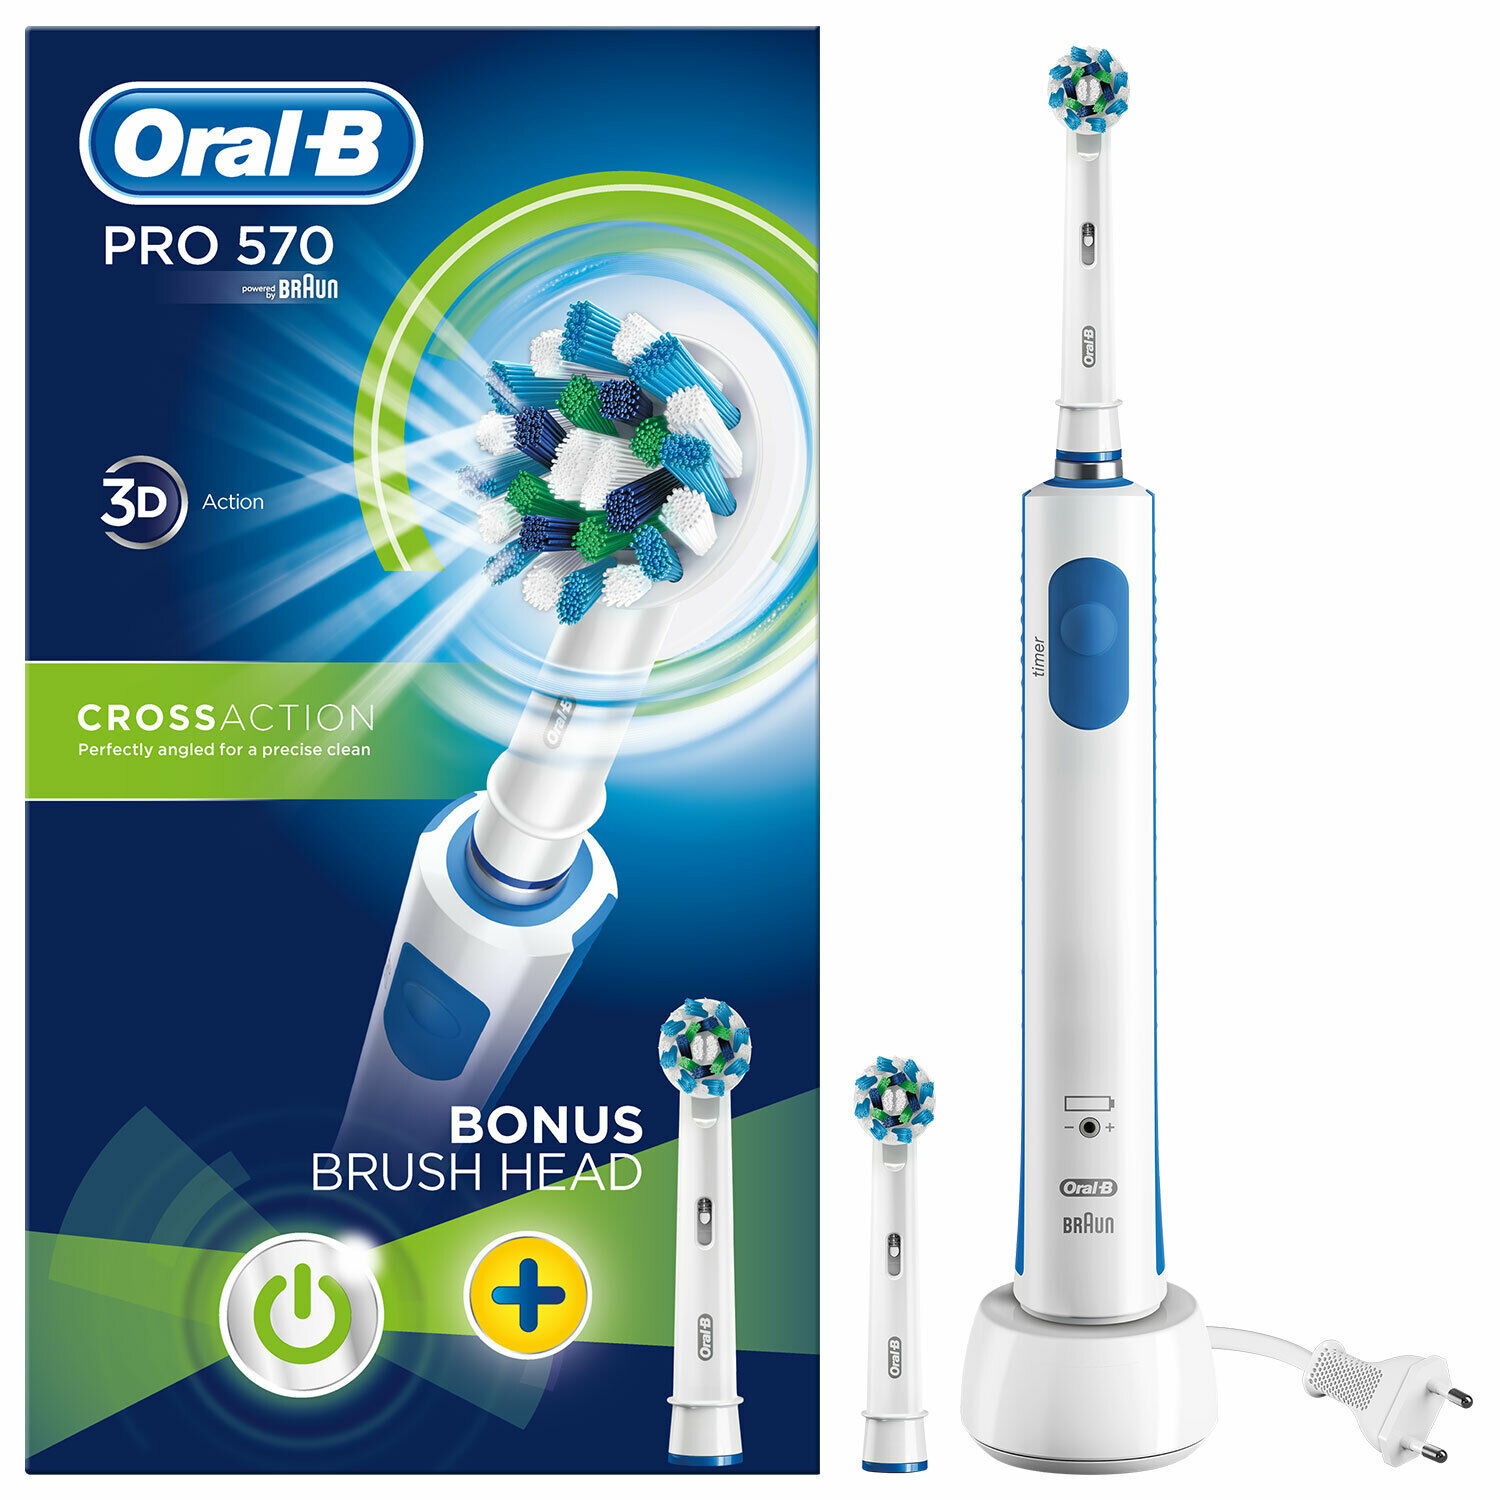 Braun Oral-B Pro 570 3D Cross Action Electric Rechargeable Power Toothbrush